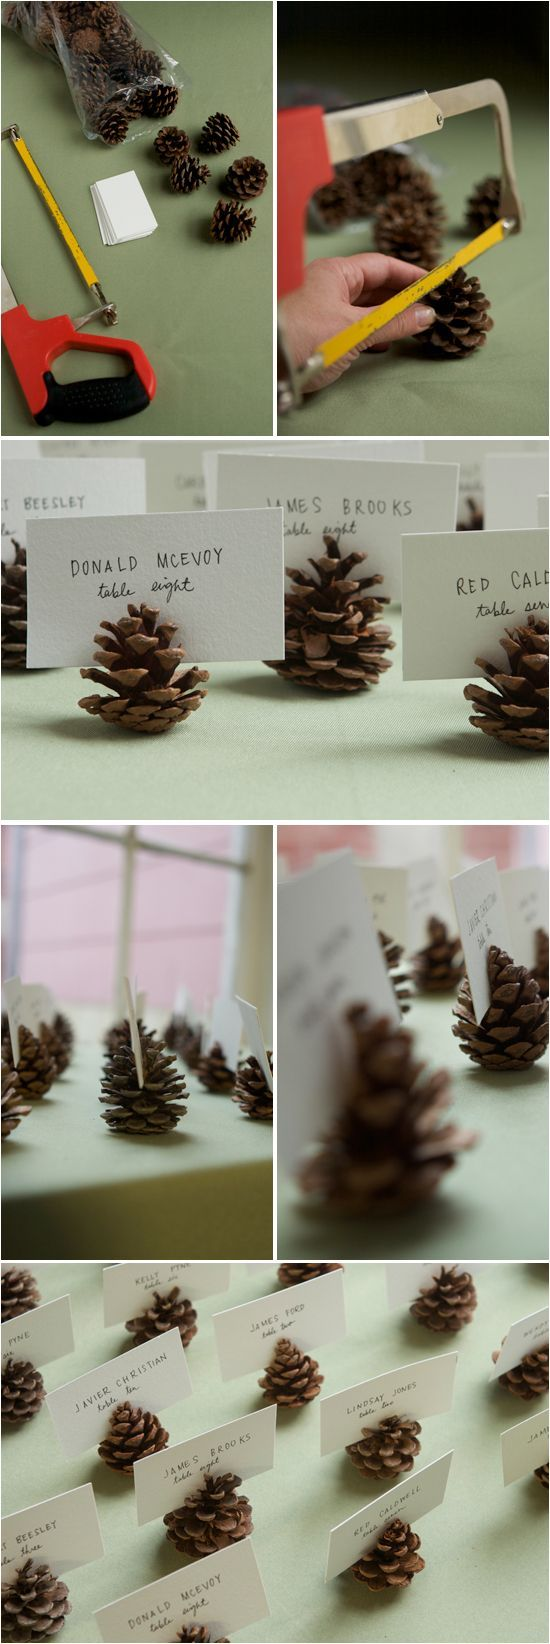 Pine cone escort cards - This a great idea for a winter wedding. If you are going for more of a glitzy wedding try spray painting them in a silver or gold and maybe adding a little glitter.